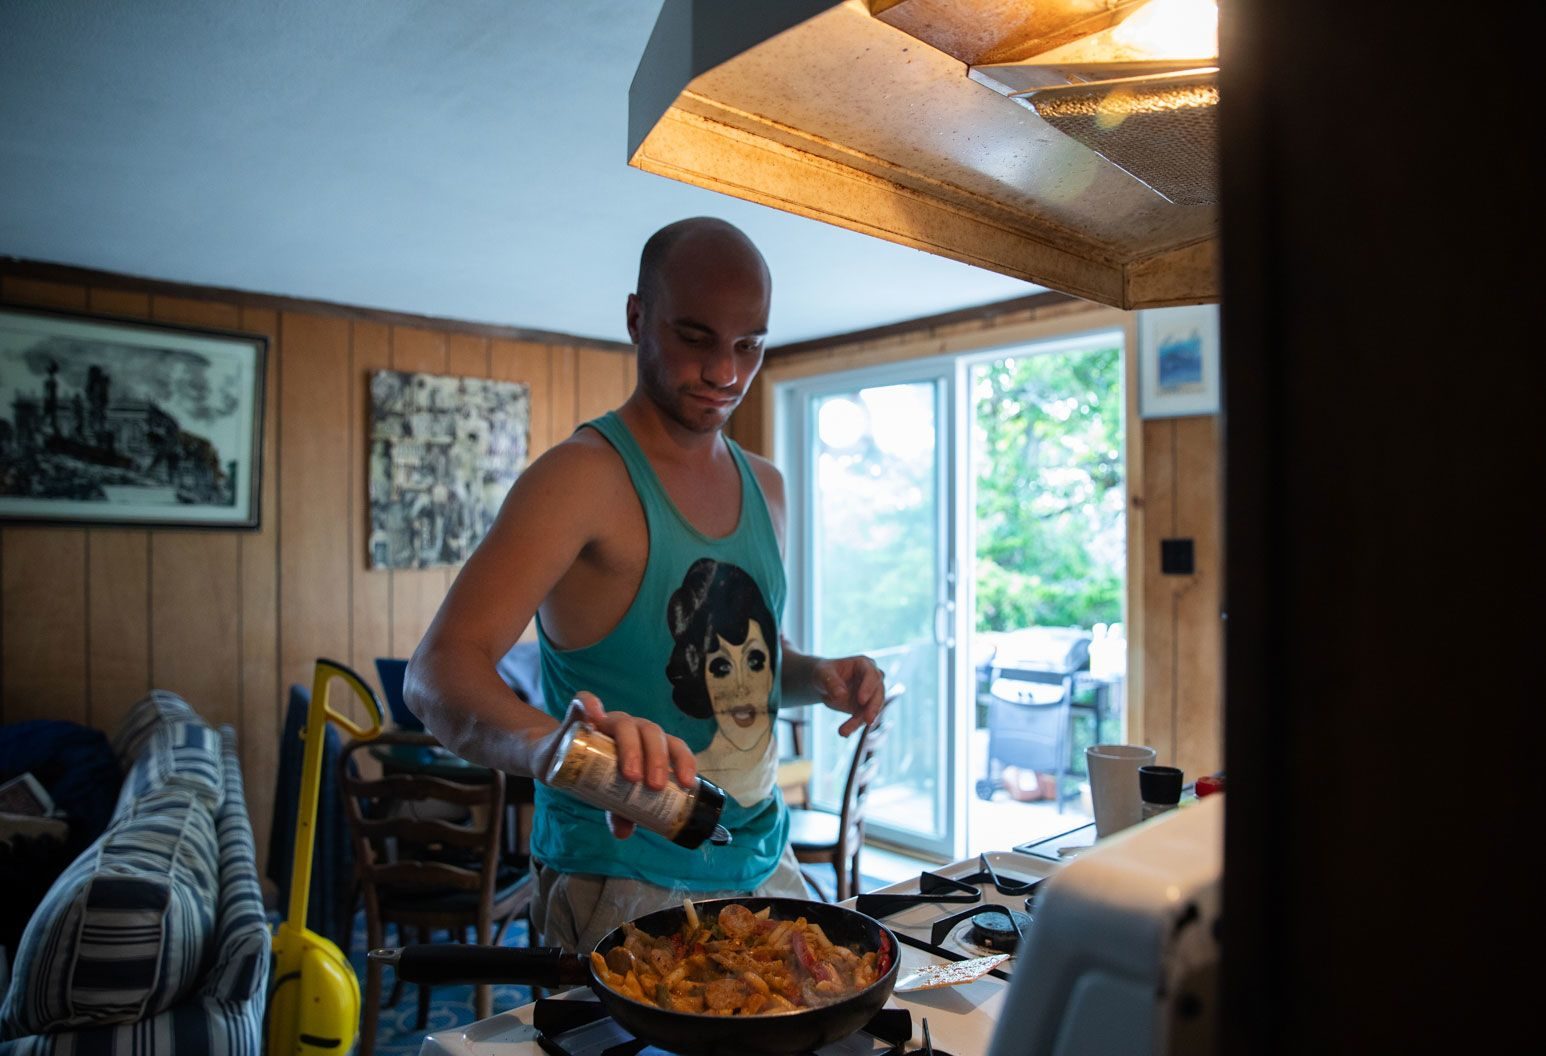 A bald man in a blue tank top pours seasoning over a plate of grilled shrimp that is boiling up on a stove in the kitchen.